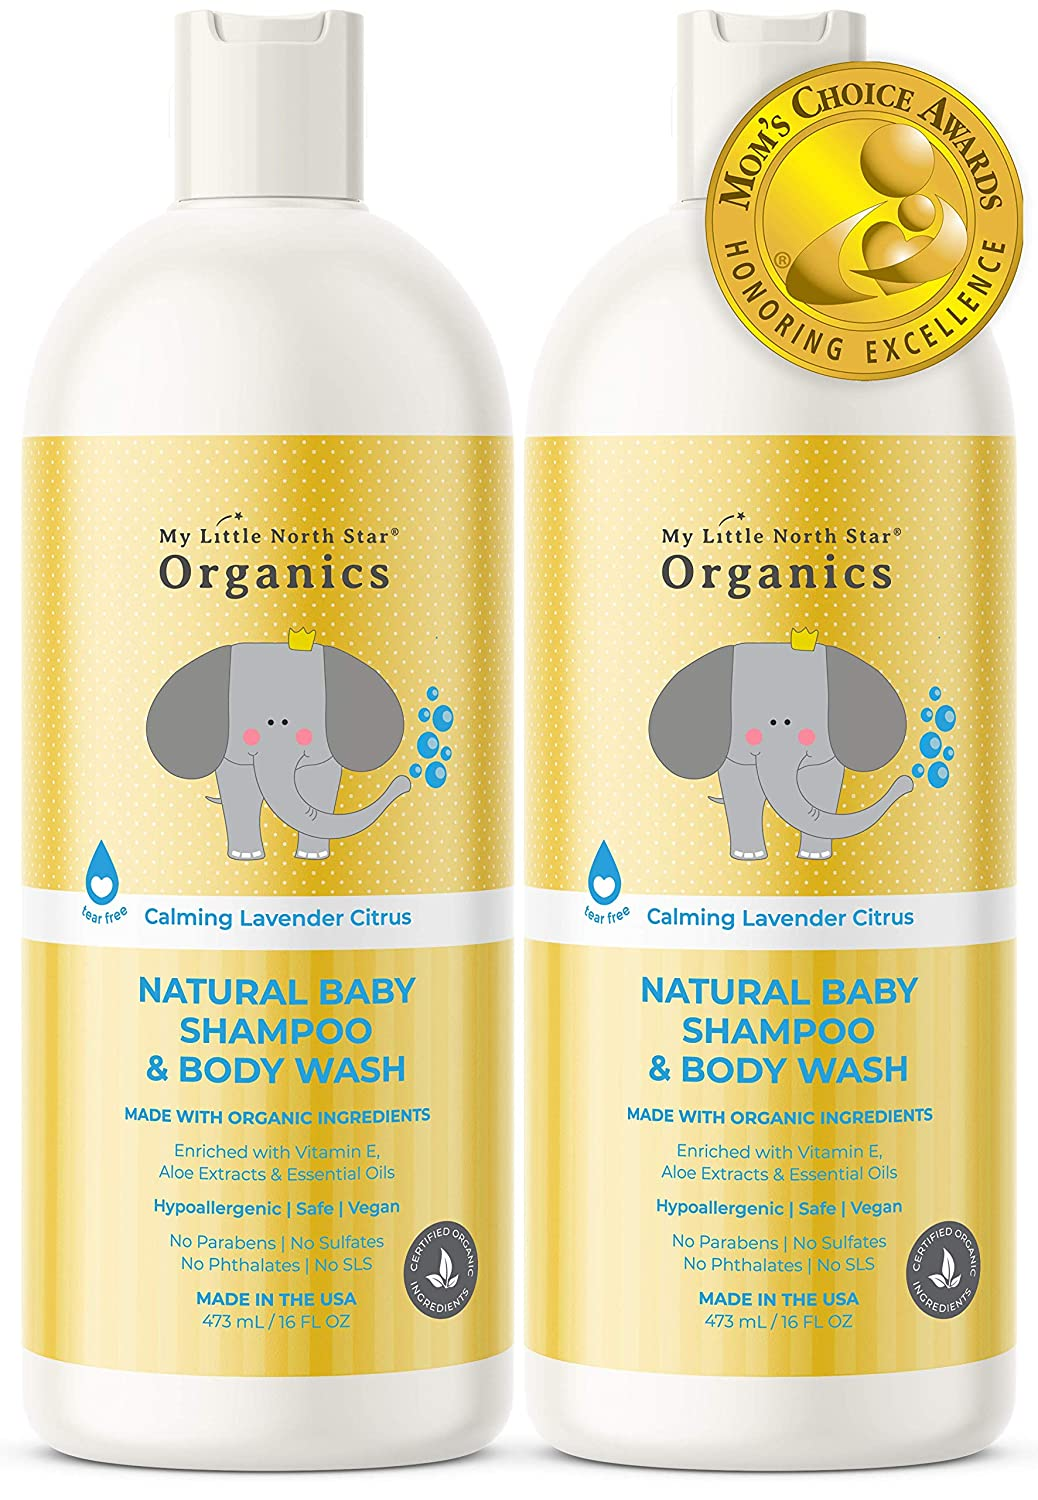 Organic Baby Shampoo & Body Wash – Tear-Free Shampoo for Toddlers & Kids – Chemical-Free Natural Soap – Made in the USA - Calming Lavender & Citrus Essential Oils 2-pack 16 oz 2 in 1